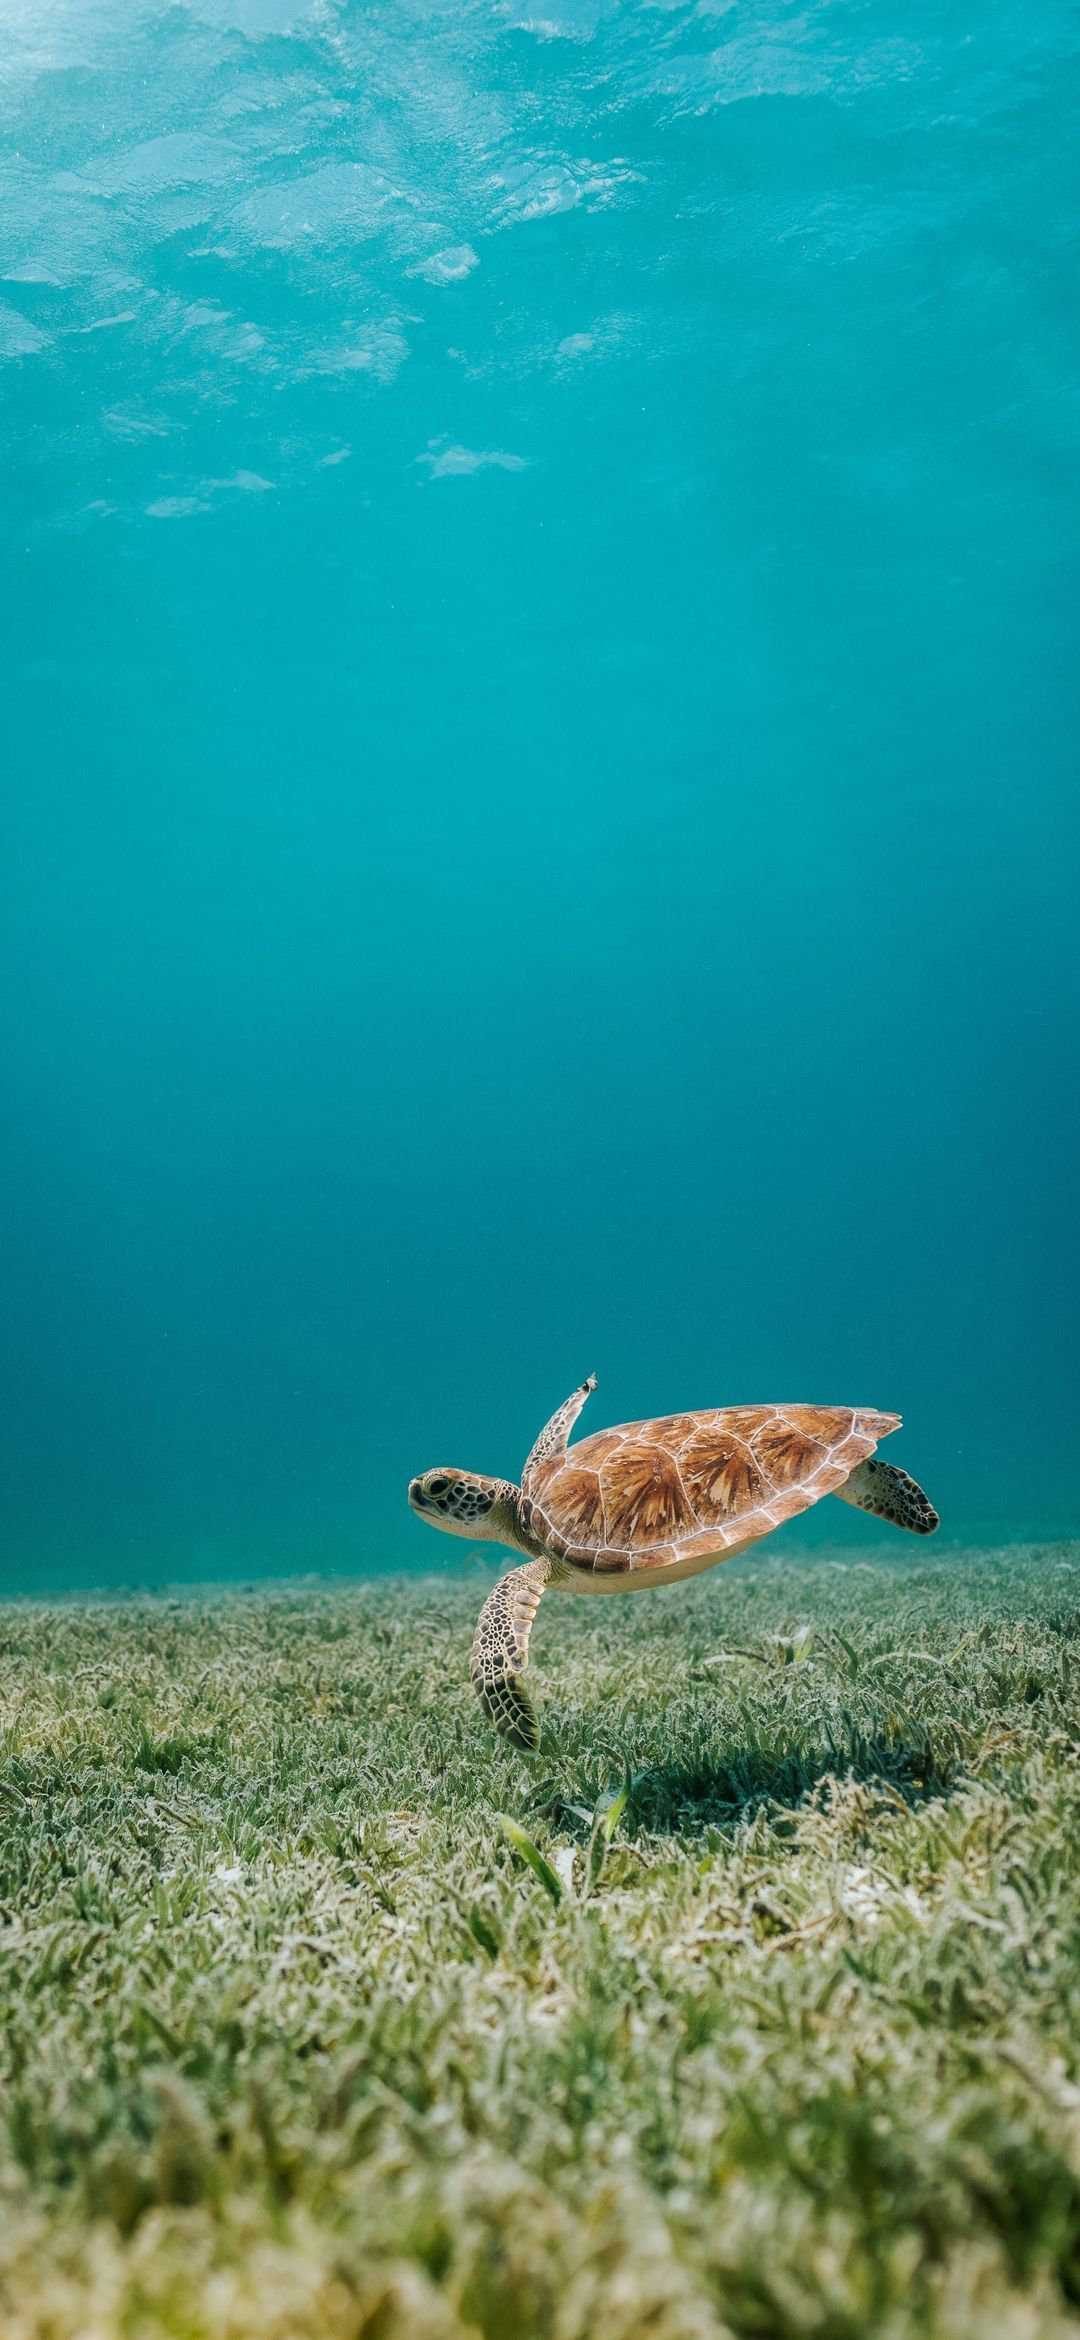 Pin by Anakonda on Turtles in 2020 Sea turtle wallpaper